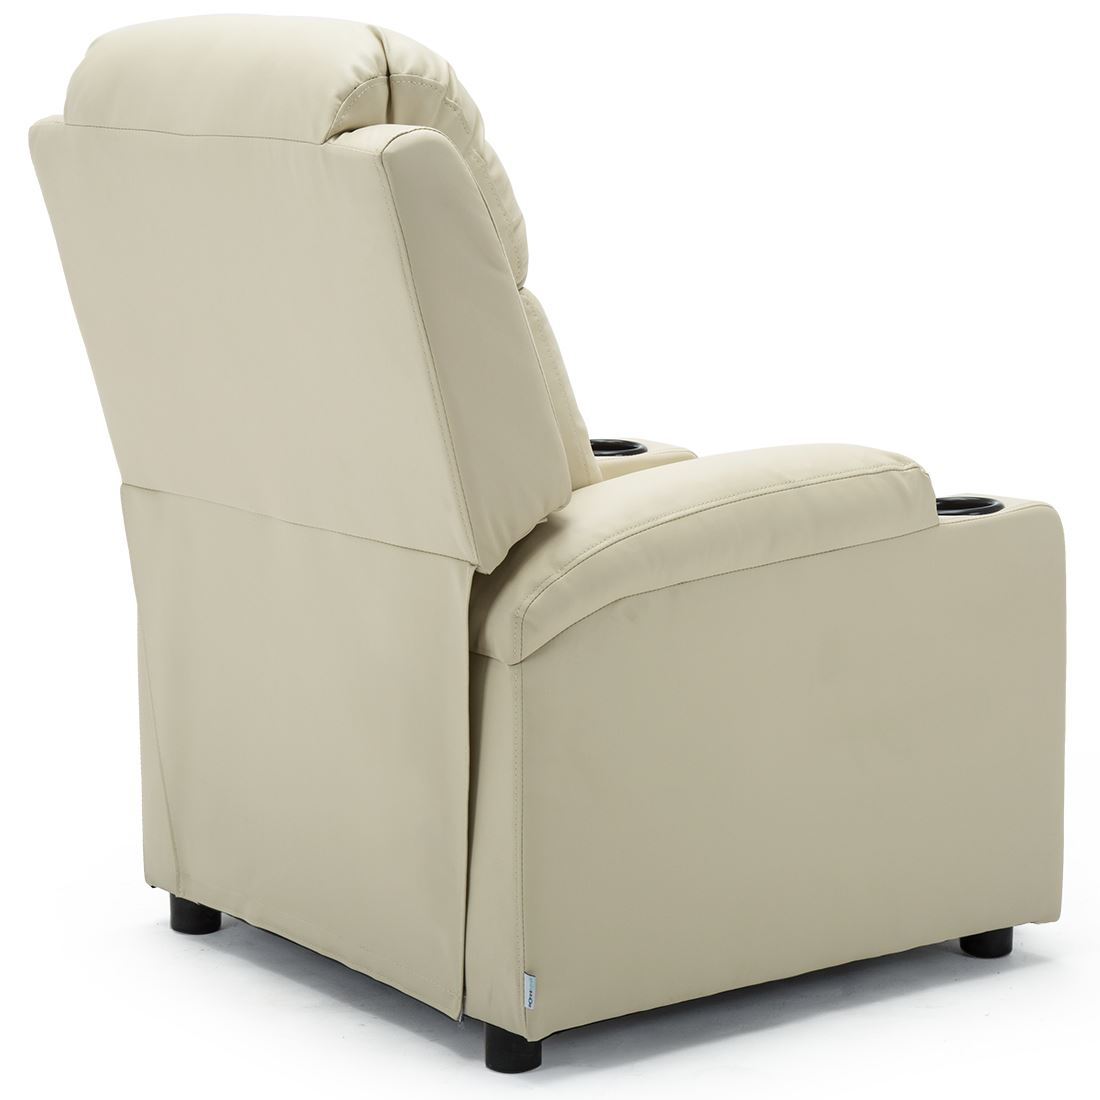 STUDIO-LEATHER-RECLINER-w-DRINK-HOLDERS-ARMCHAIR-SOFA-CHAIR-CINEMA-GAMING thumbnail 25